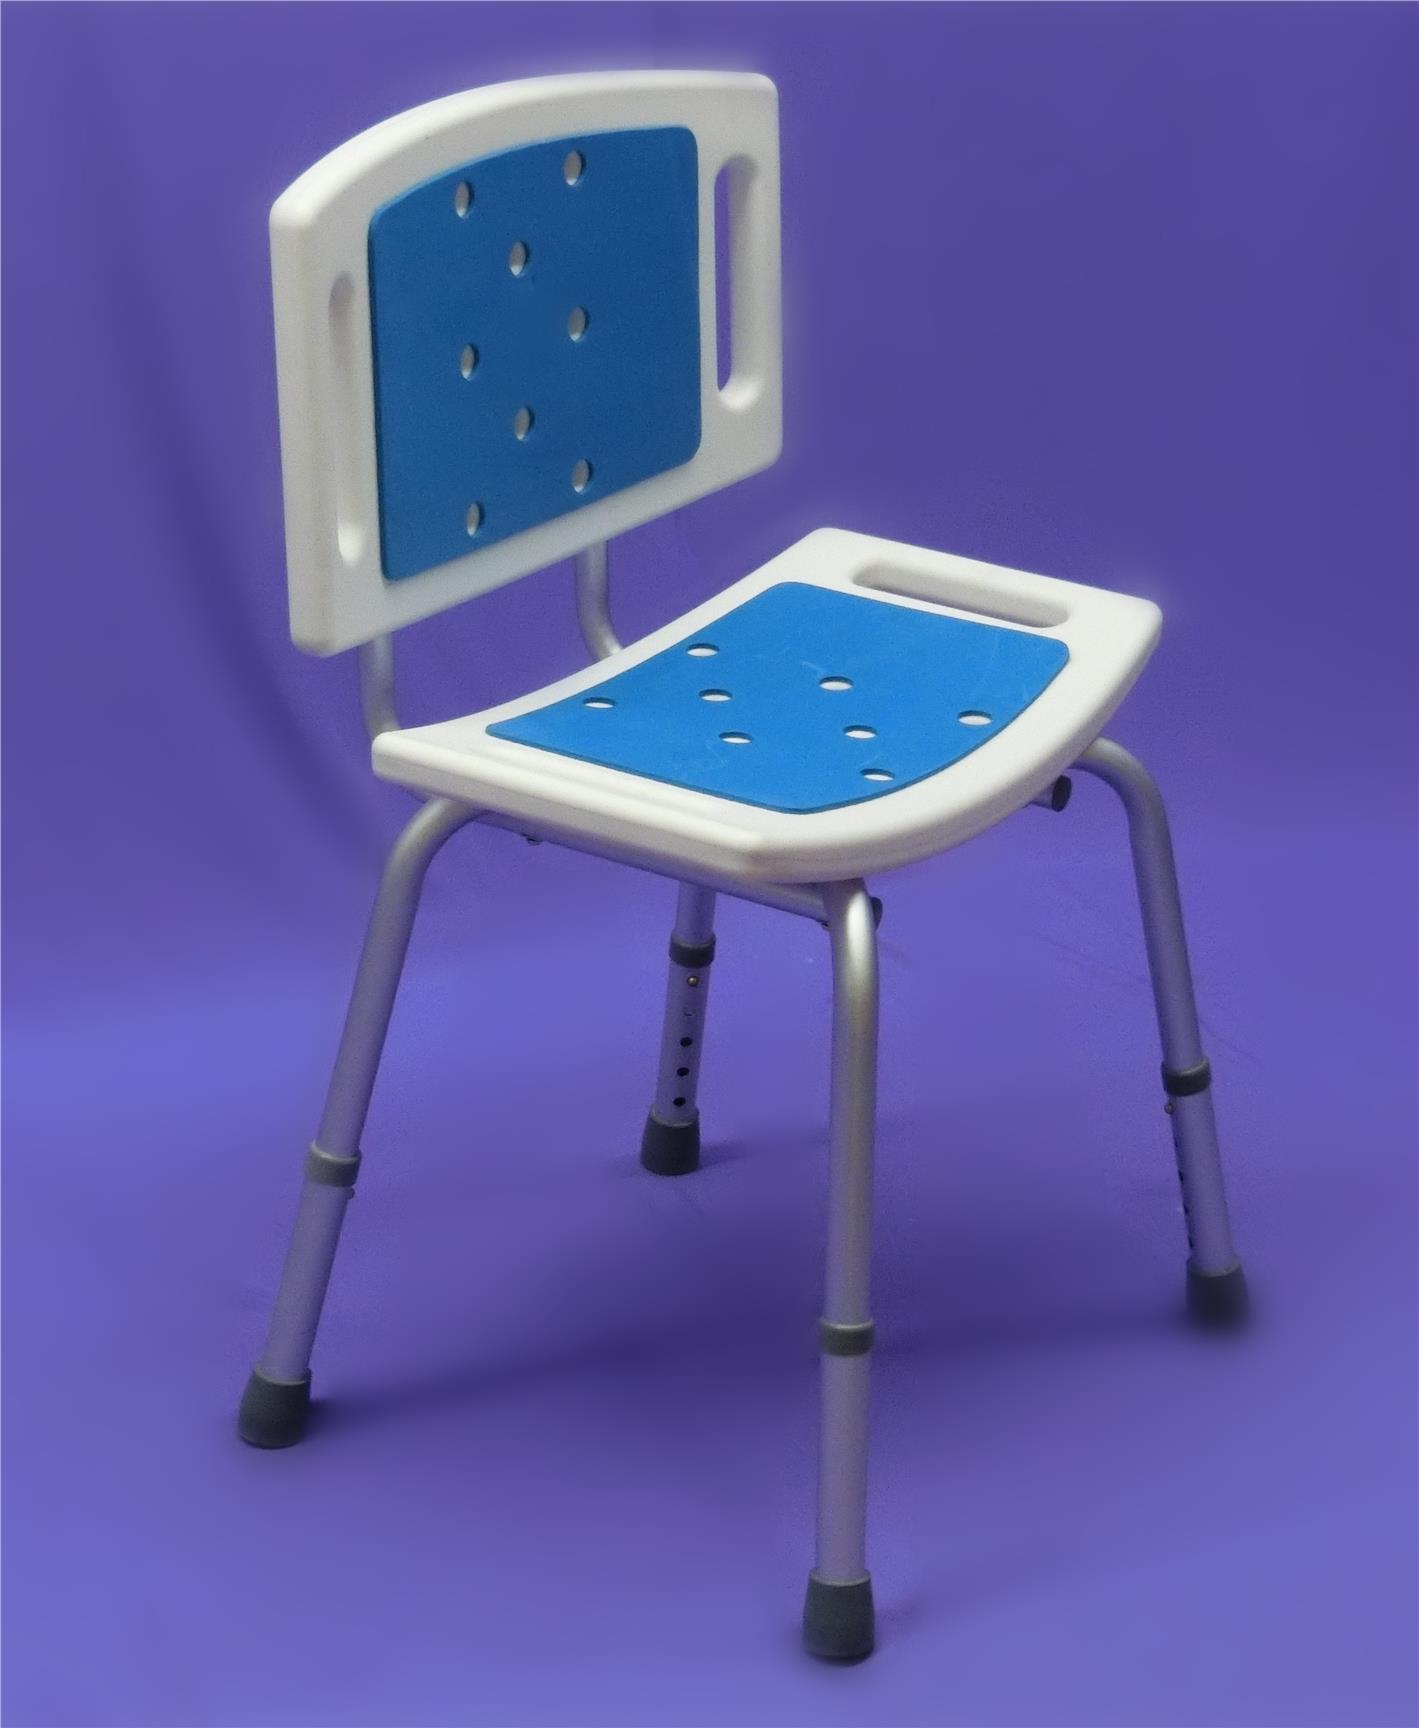 shower chair malaysia helinox one with eva pad end 8 23 2017 3 15 am myt